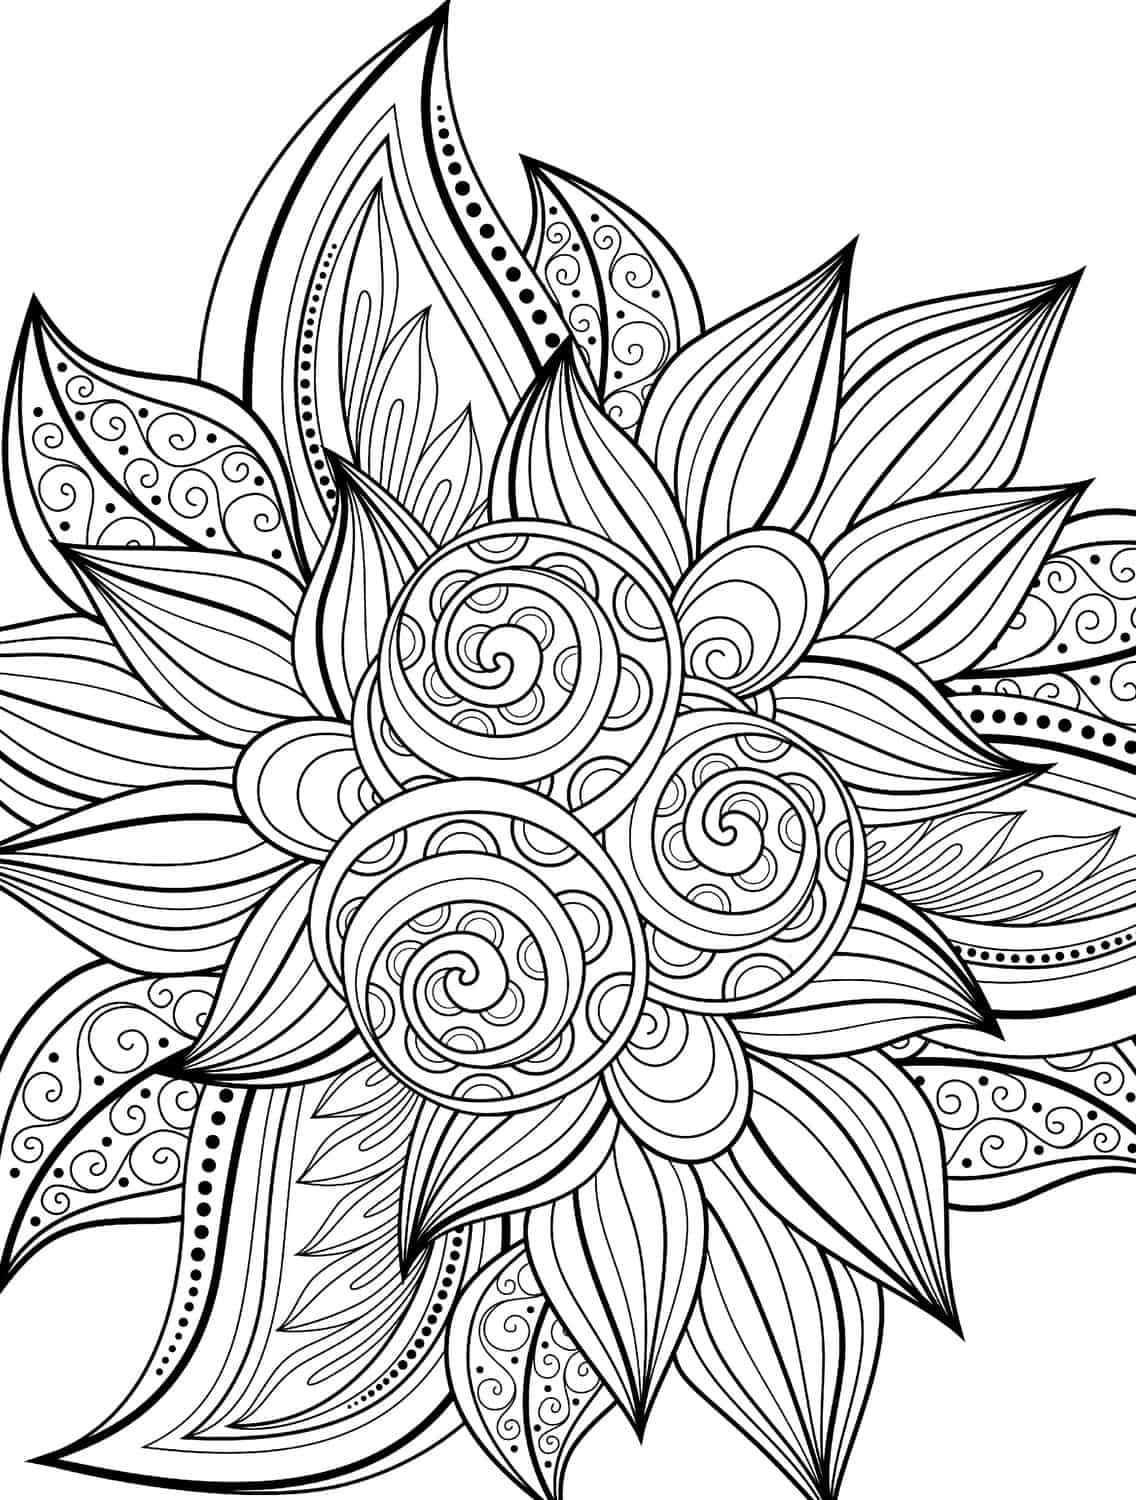 coloring book for adults easy 10 free printable holiday adult coloring pages coloring easy book adults for